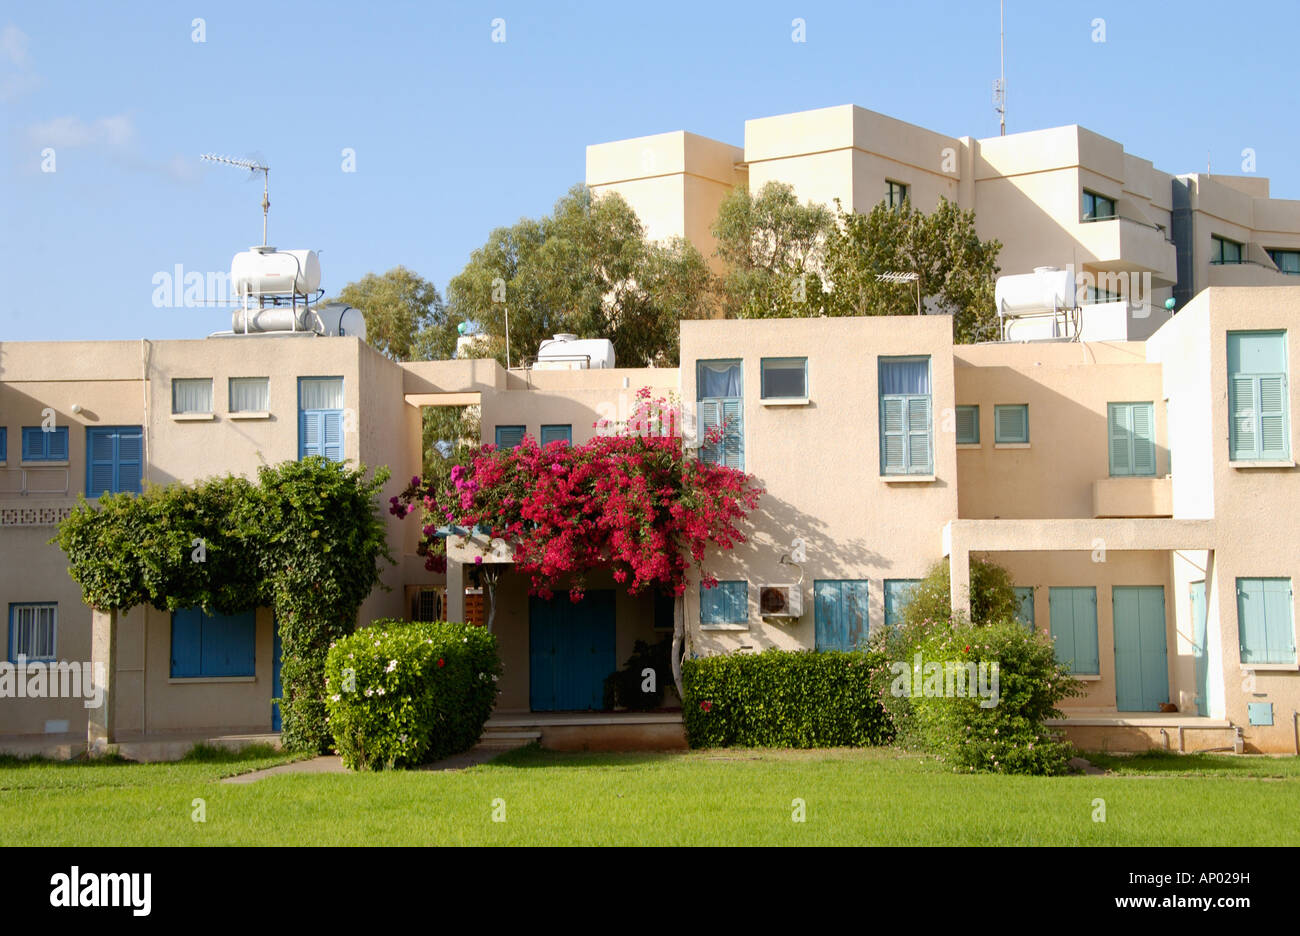 Holiday homes and apartments at Pernera on the Mediterranean island of  Cyprus EU with grass area in front